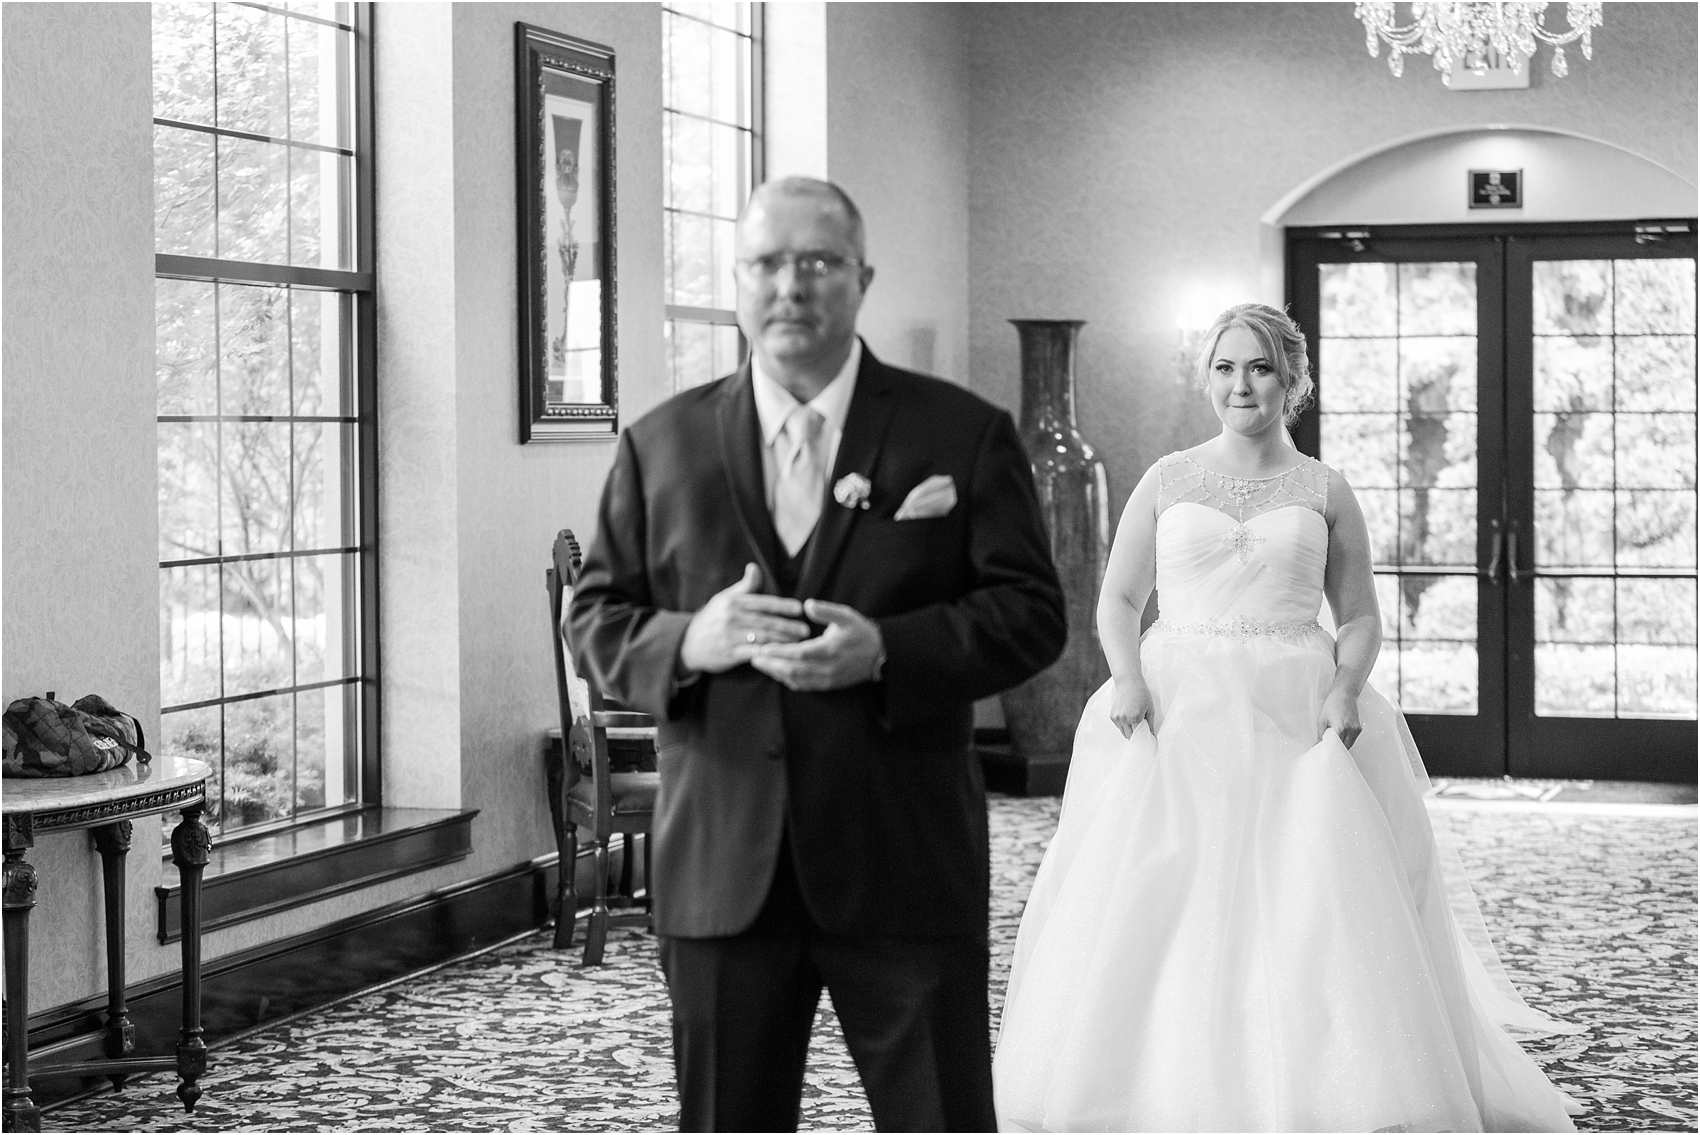 lord-of-the-rings-inspired-wedding-photos-at-crystal-gardens-in-howell-mi-by-courtney-carolyn-photography_0016.jpg